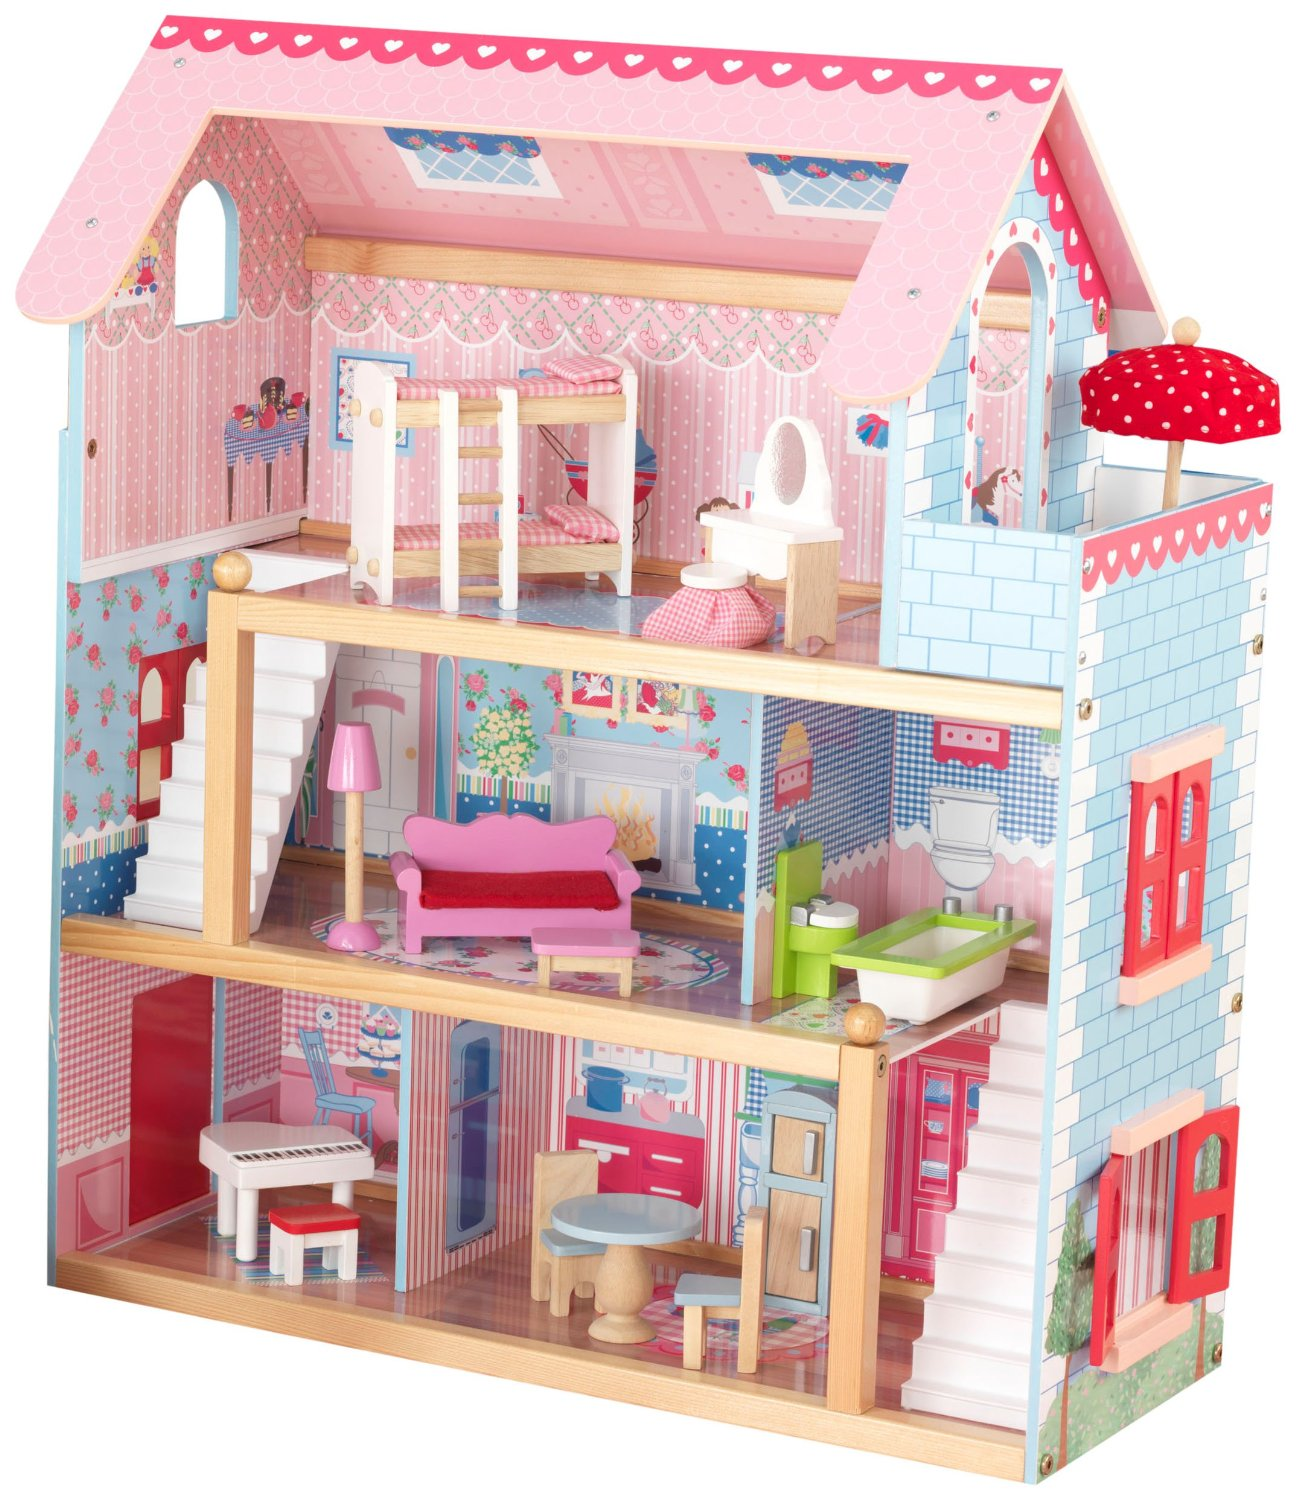 Nhà tranh cho búp bê - KidKraft Chelsea Doll Cottage with Furniture